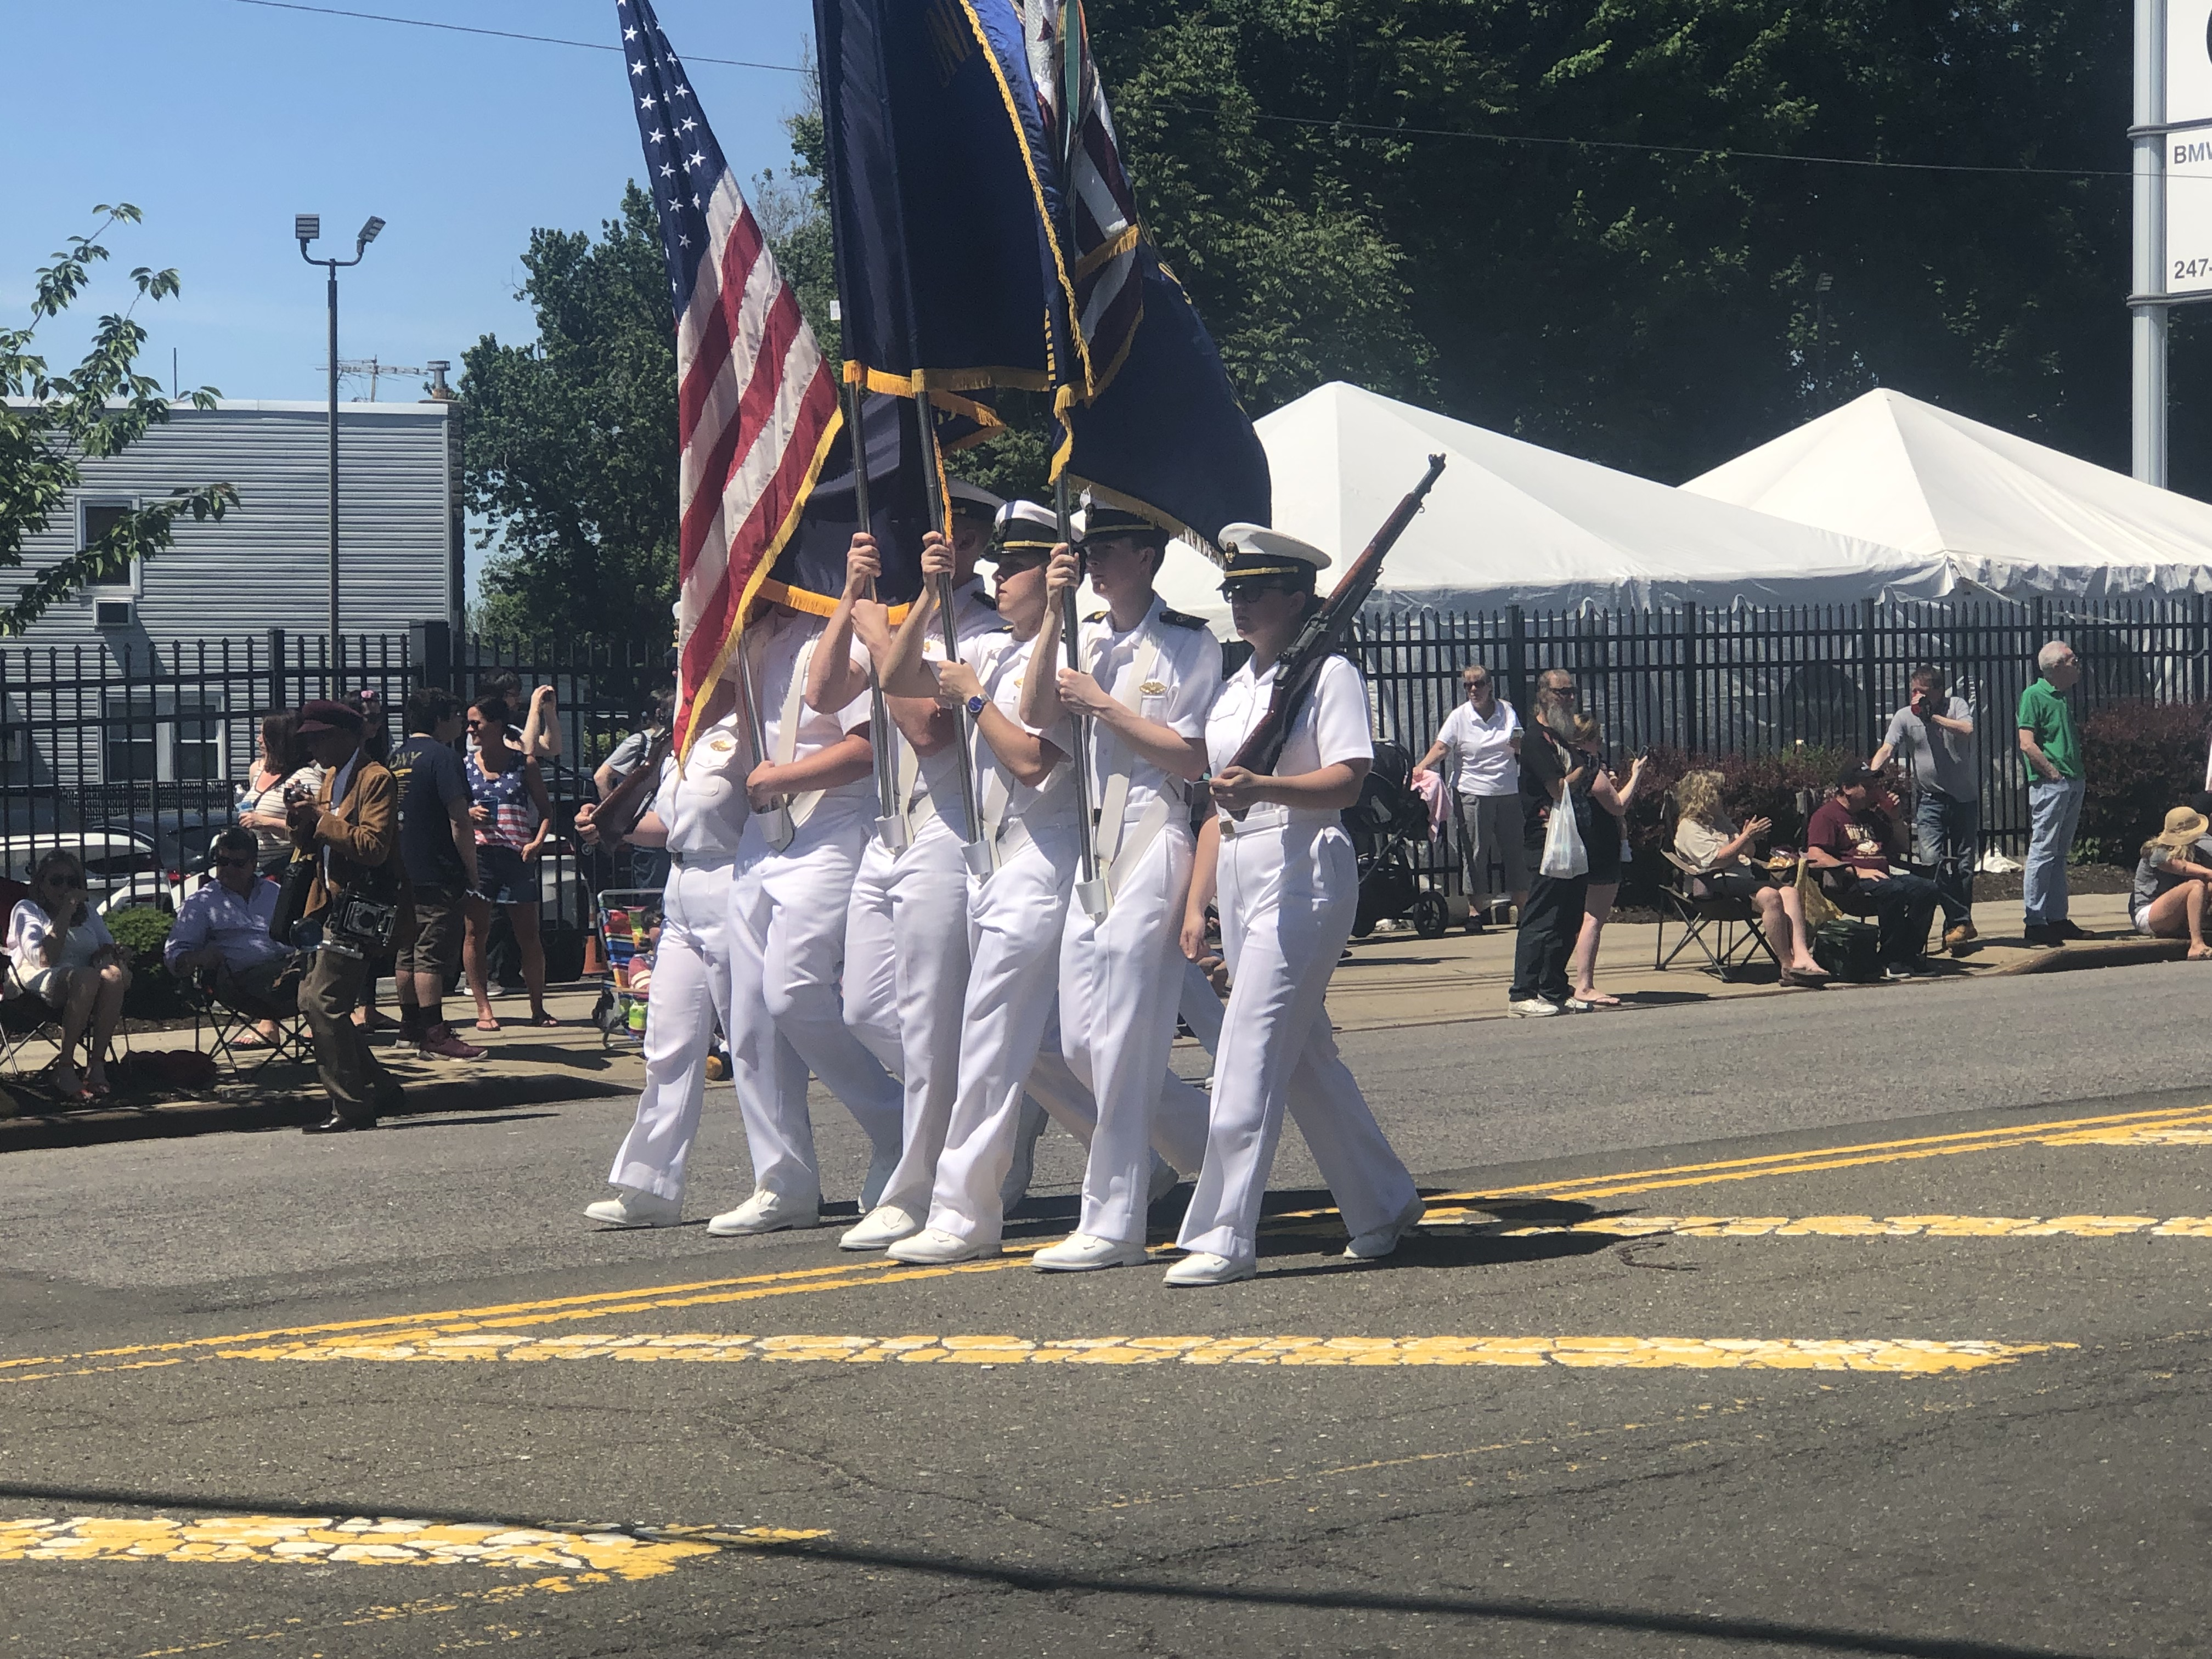 Regiment marching in the Little Neck-Douglaston Memorial Day Parade